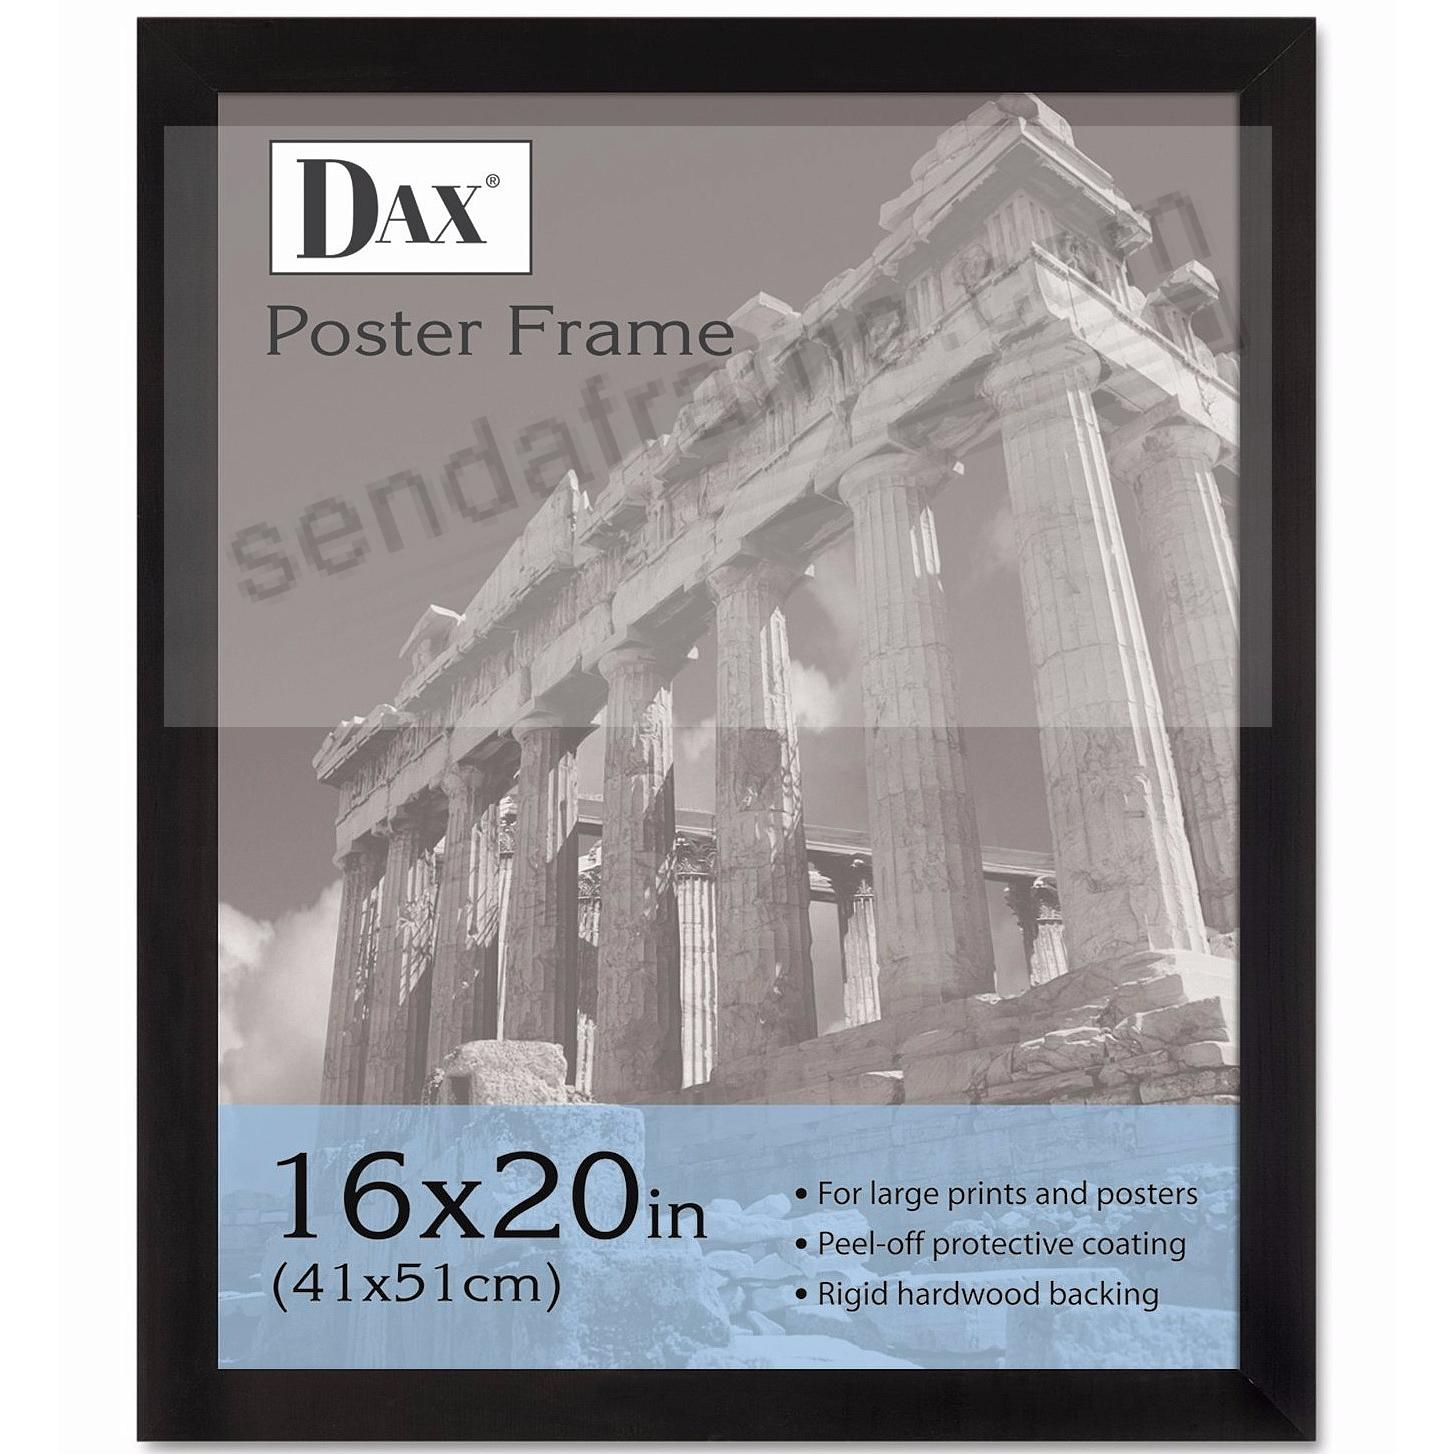 DAX / Connoisseur® black wooden posters